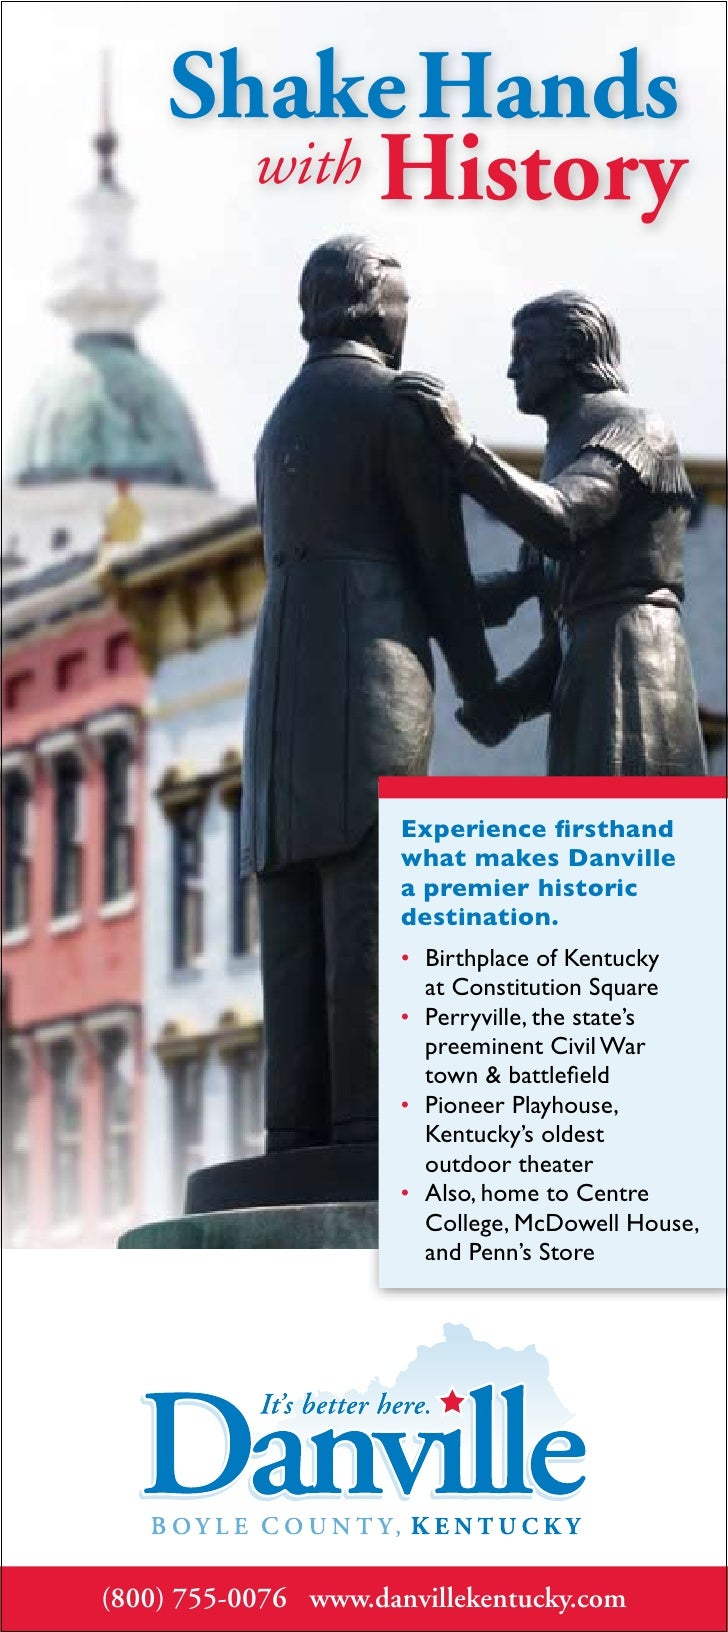 Danville/Boyle County, Kentucky:  Shake Hands with History